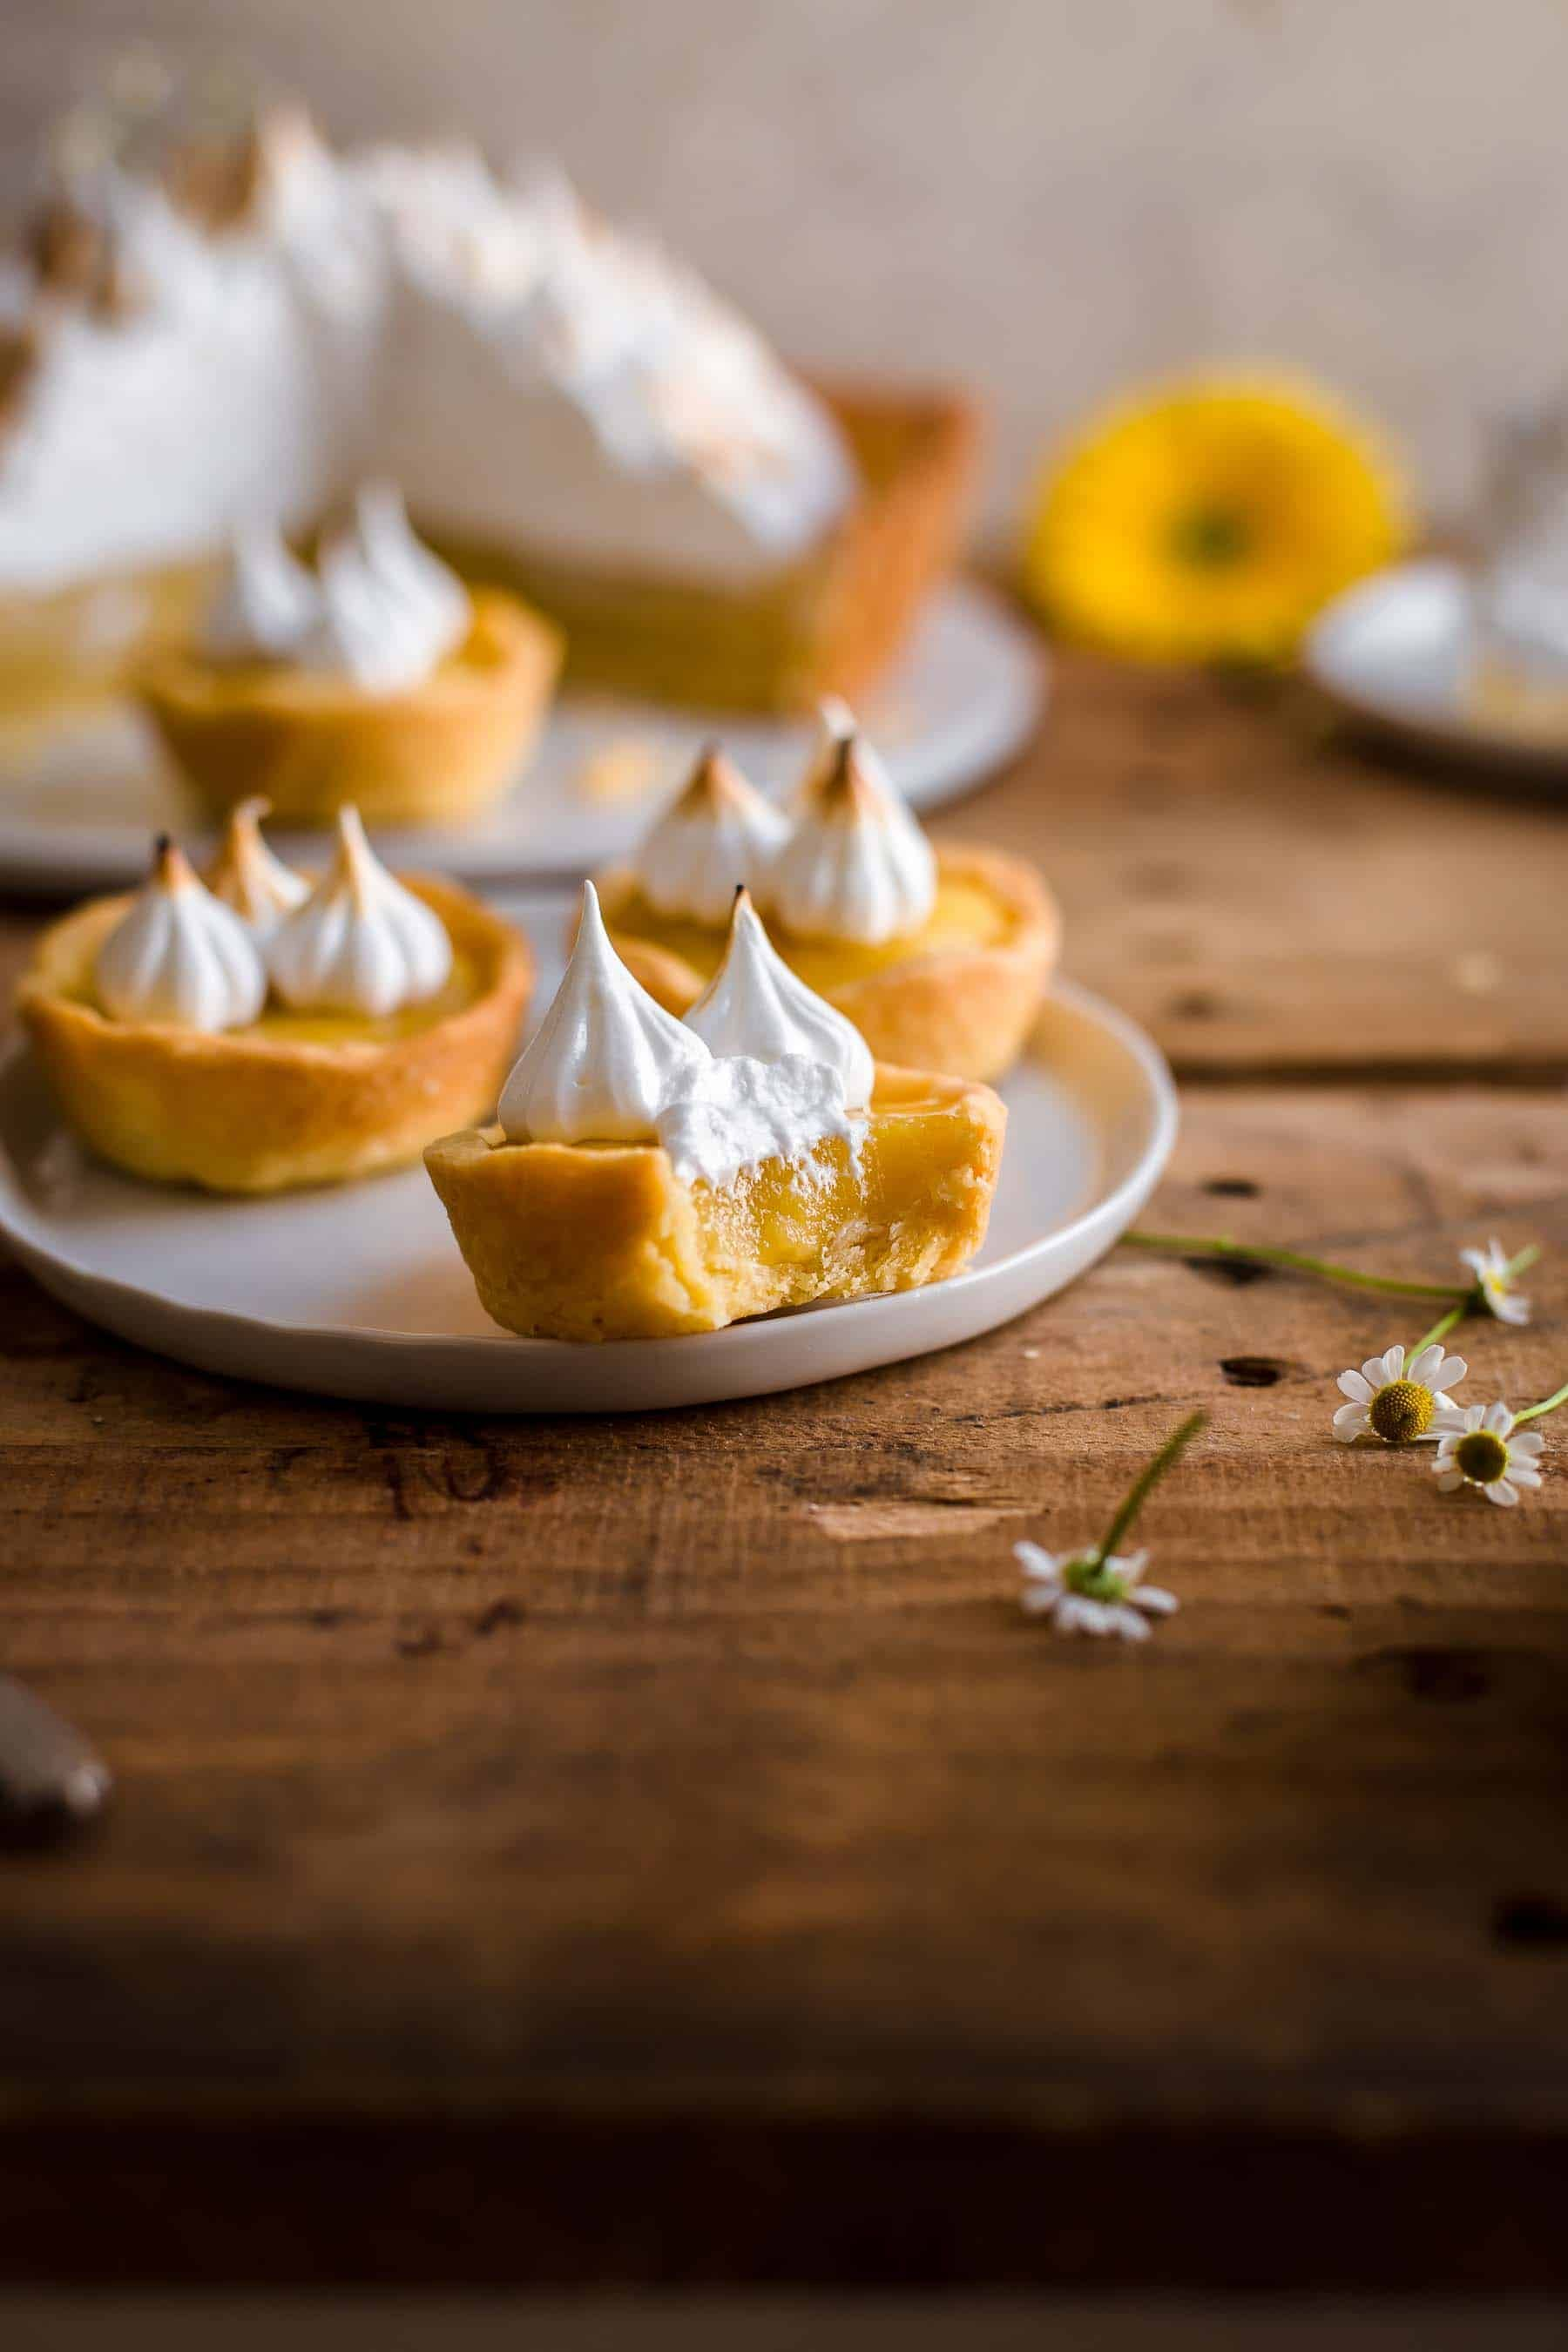 This tangy sweet Lemon Meringue Tartlets are so delicious. Learn how to make them. Lemon Meringue Tart Recipe by Also The Crumbs Please #lemon #meringue # tart #tartlets #lemontart #lemonmeringue #lemontartlets #baking #sweets #lemonmeringuecupcakes